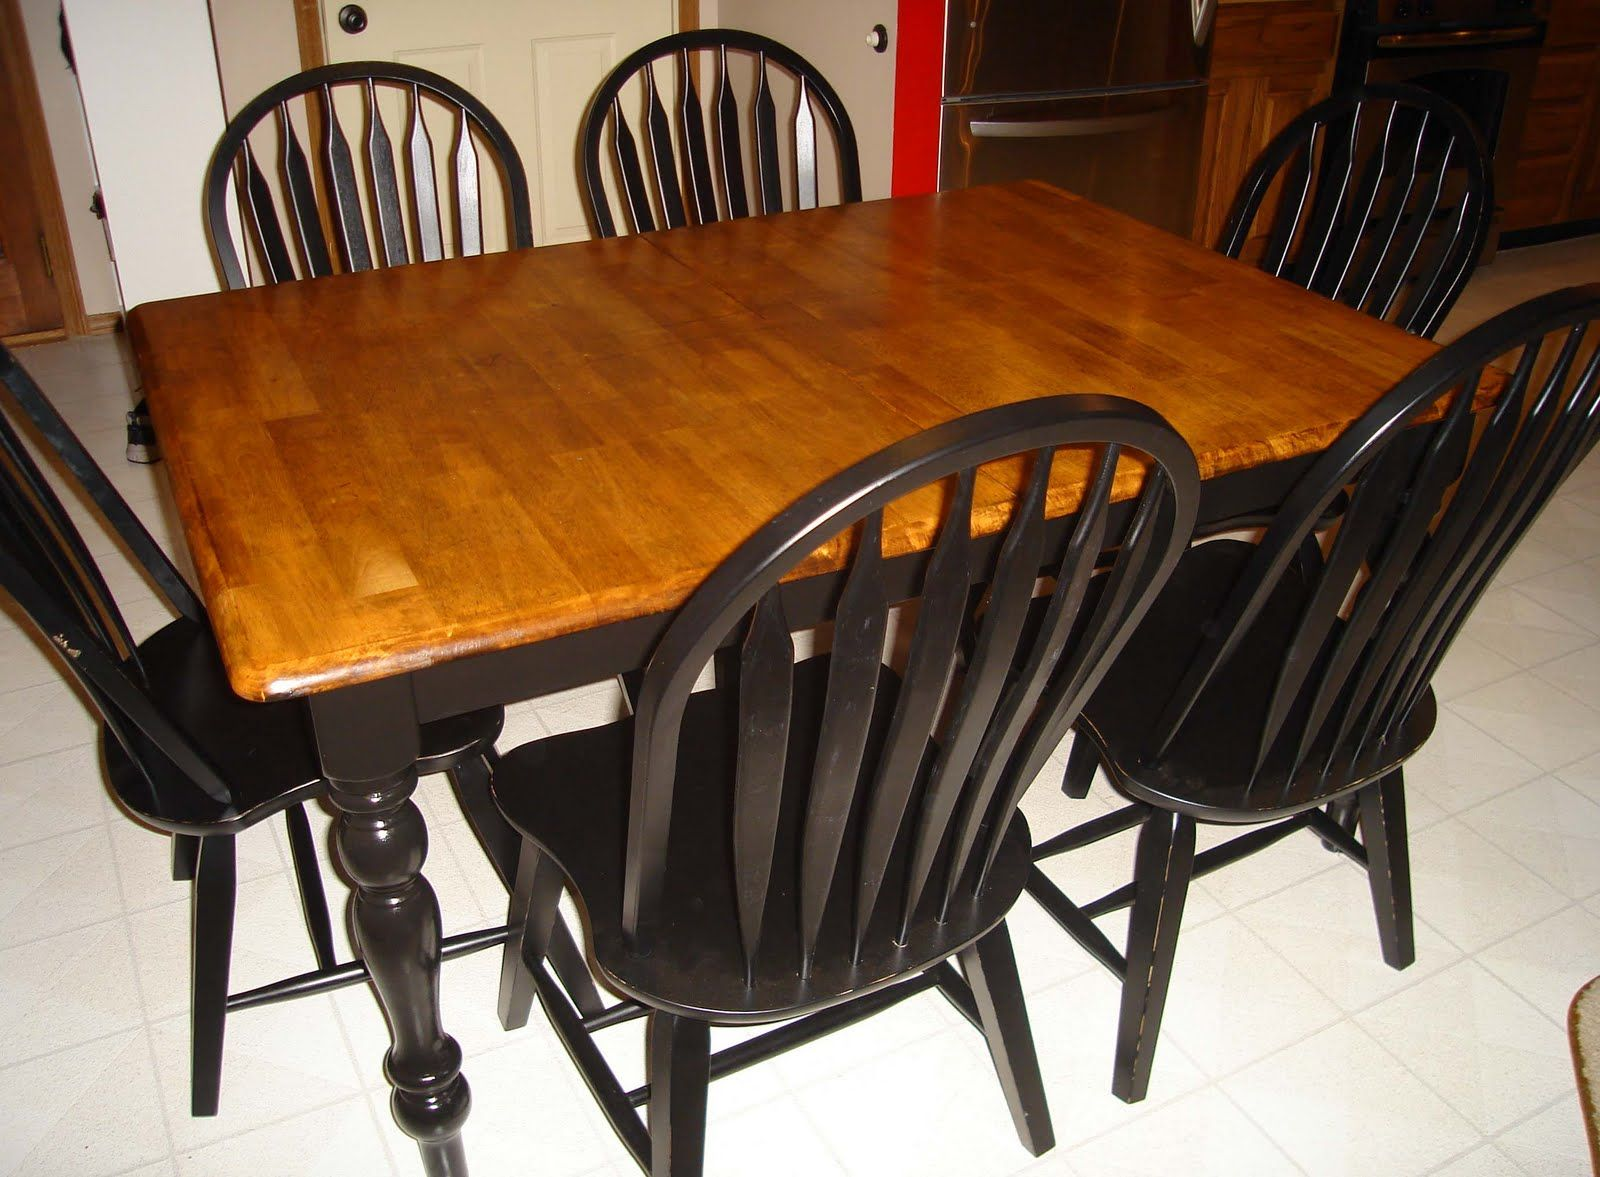 Kitchen Table Refinishing Ideas Part - 18: Before And After Refinished Kitchen Tables - Google Search